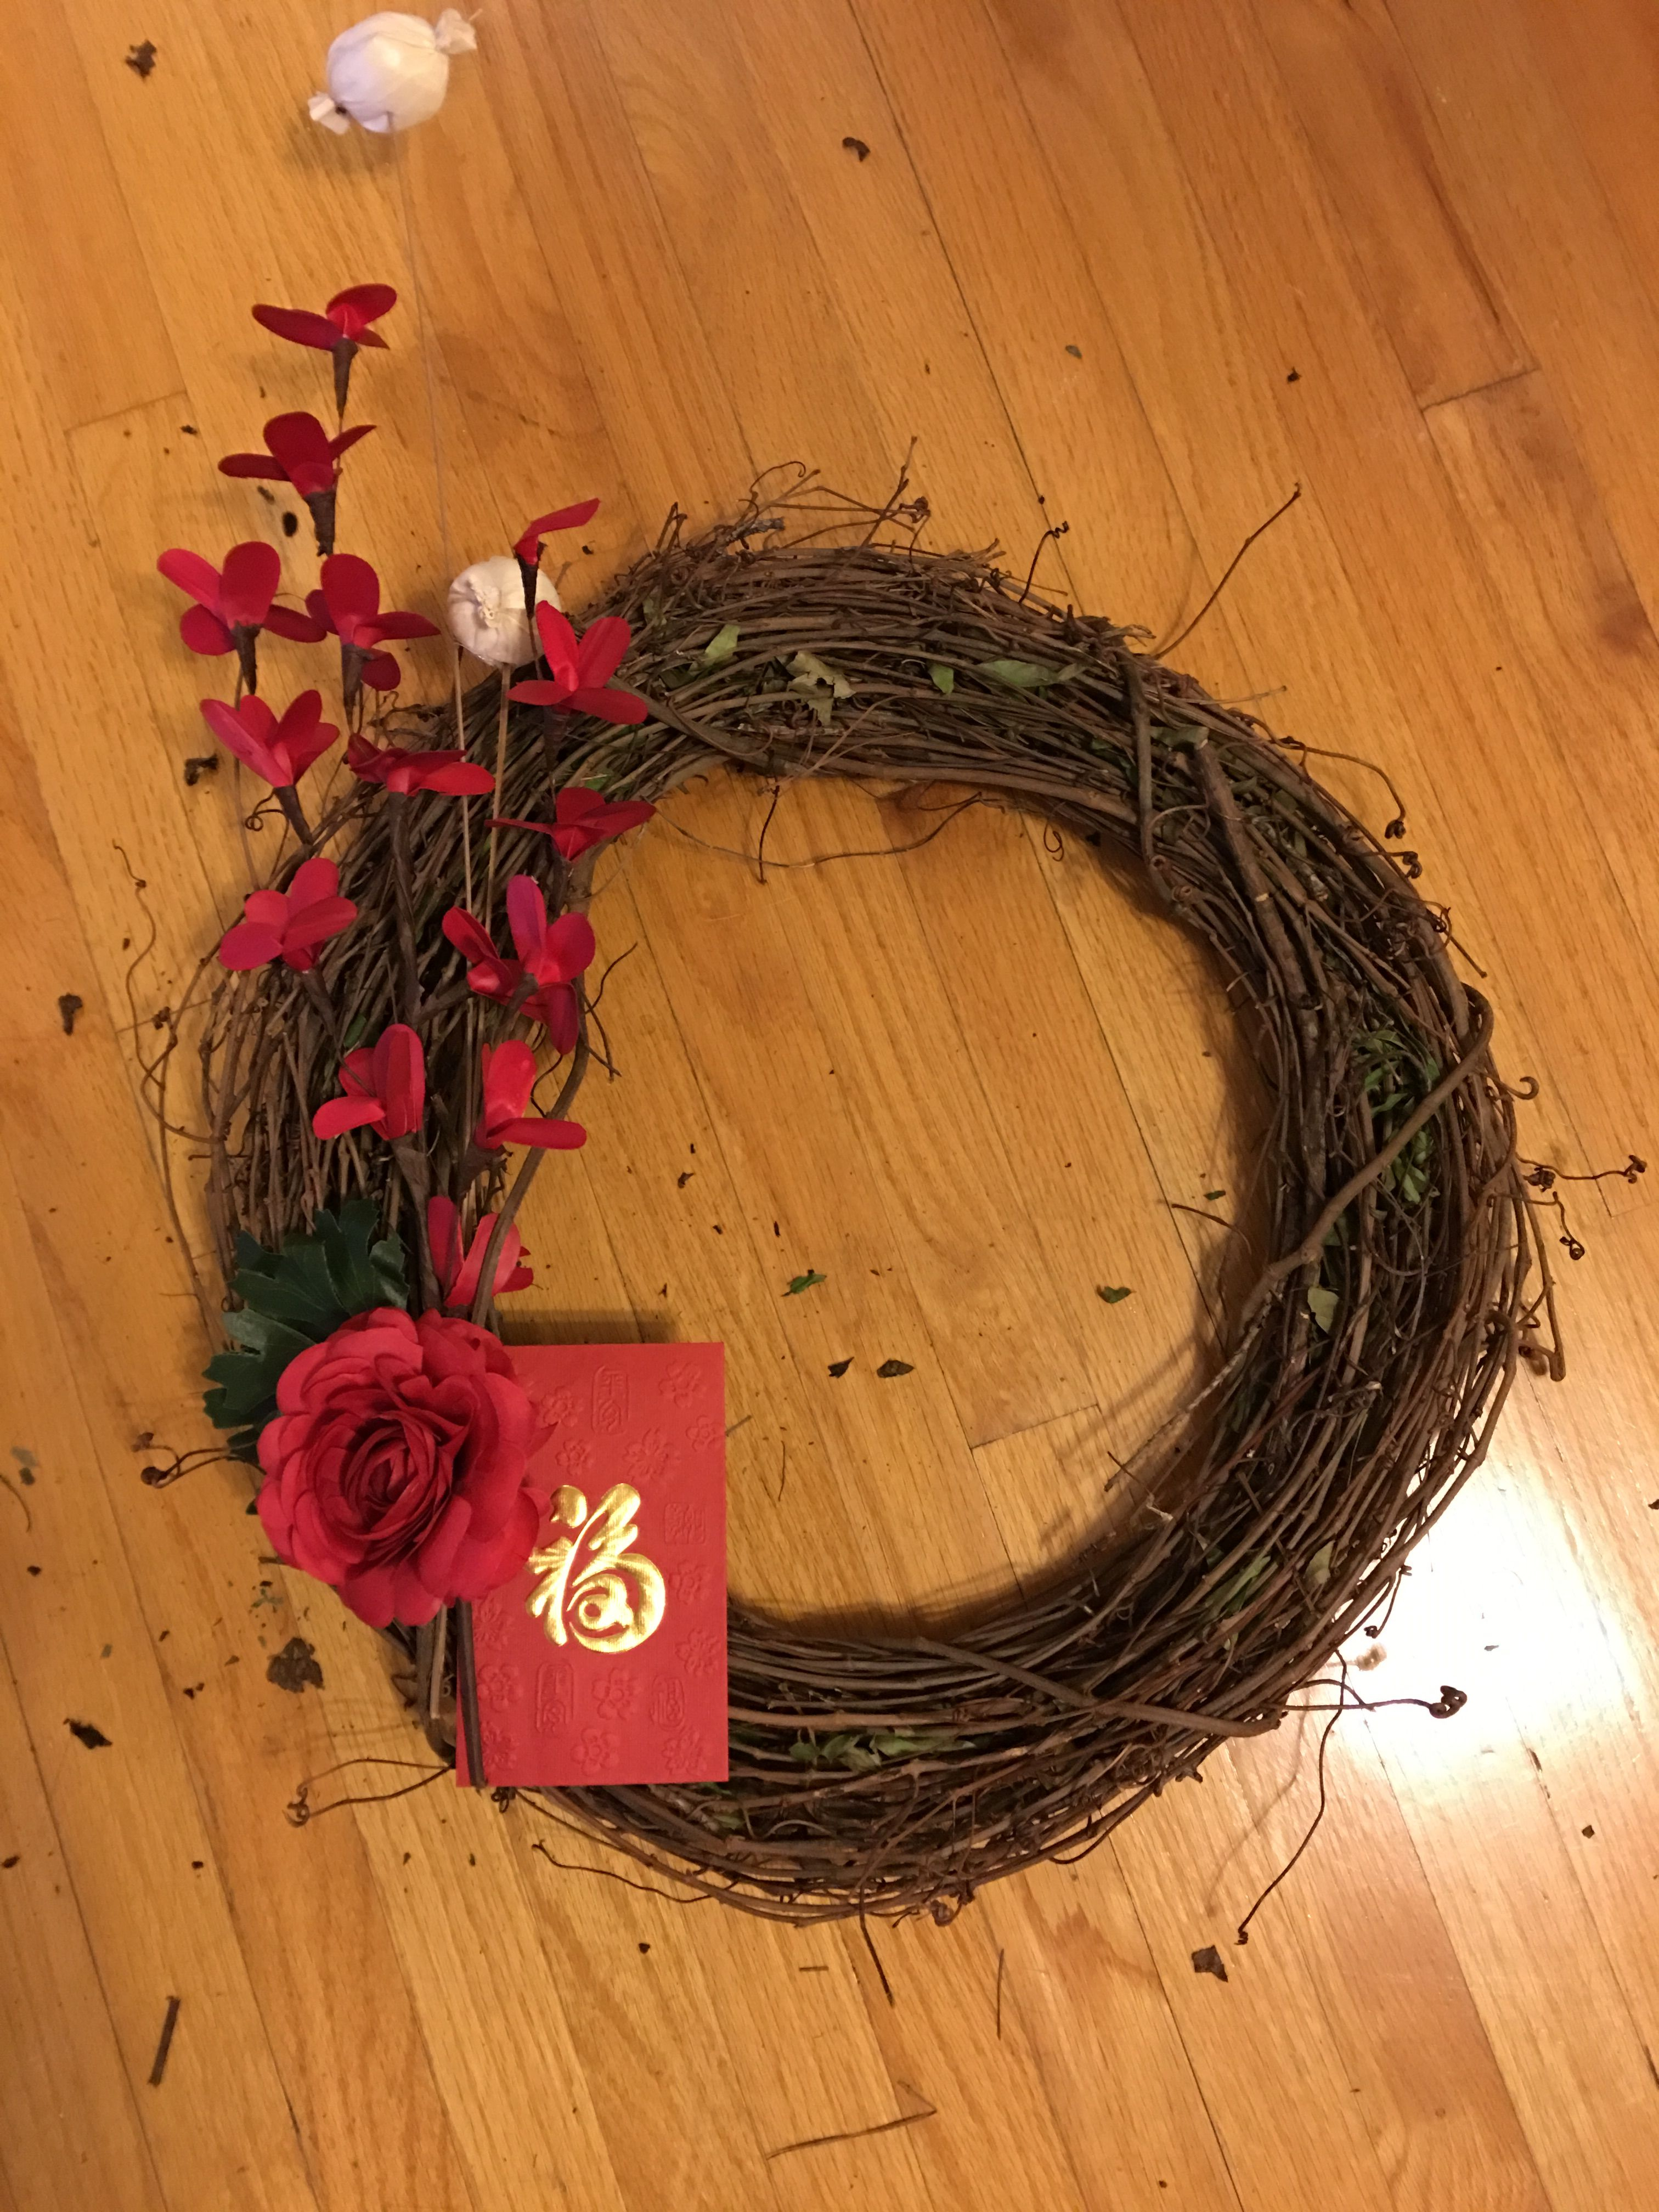 Pin by Emily Do on Lunar new year decoration (With images